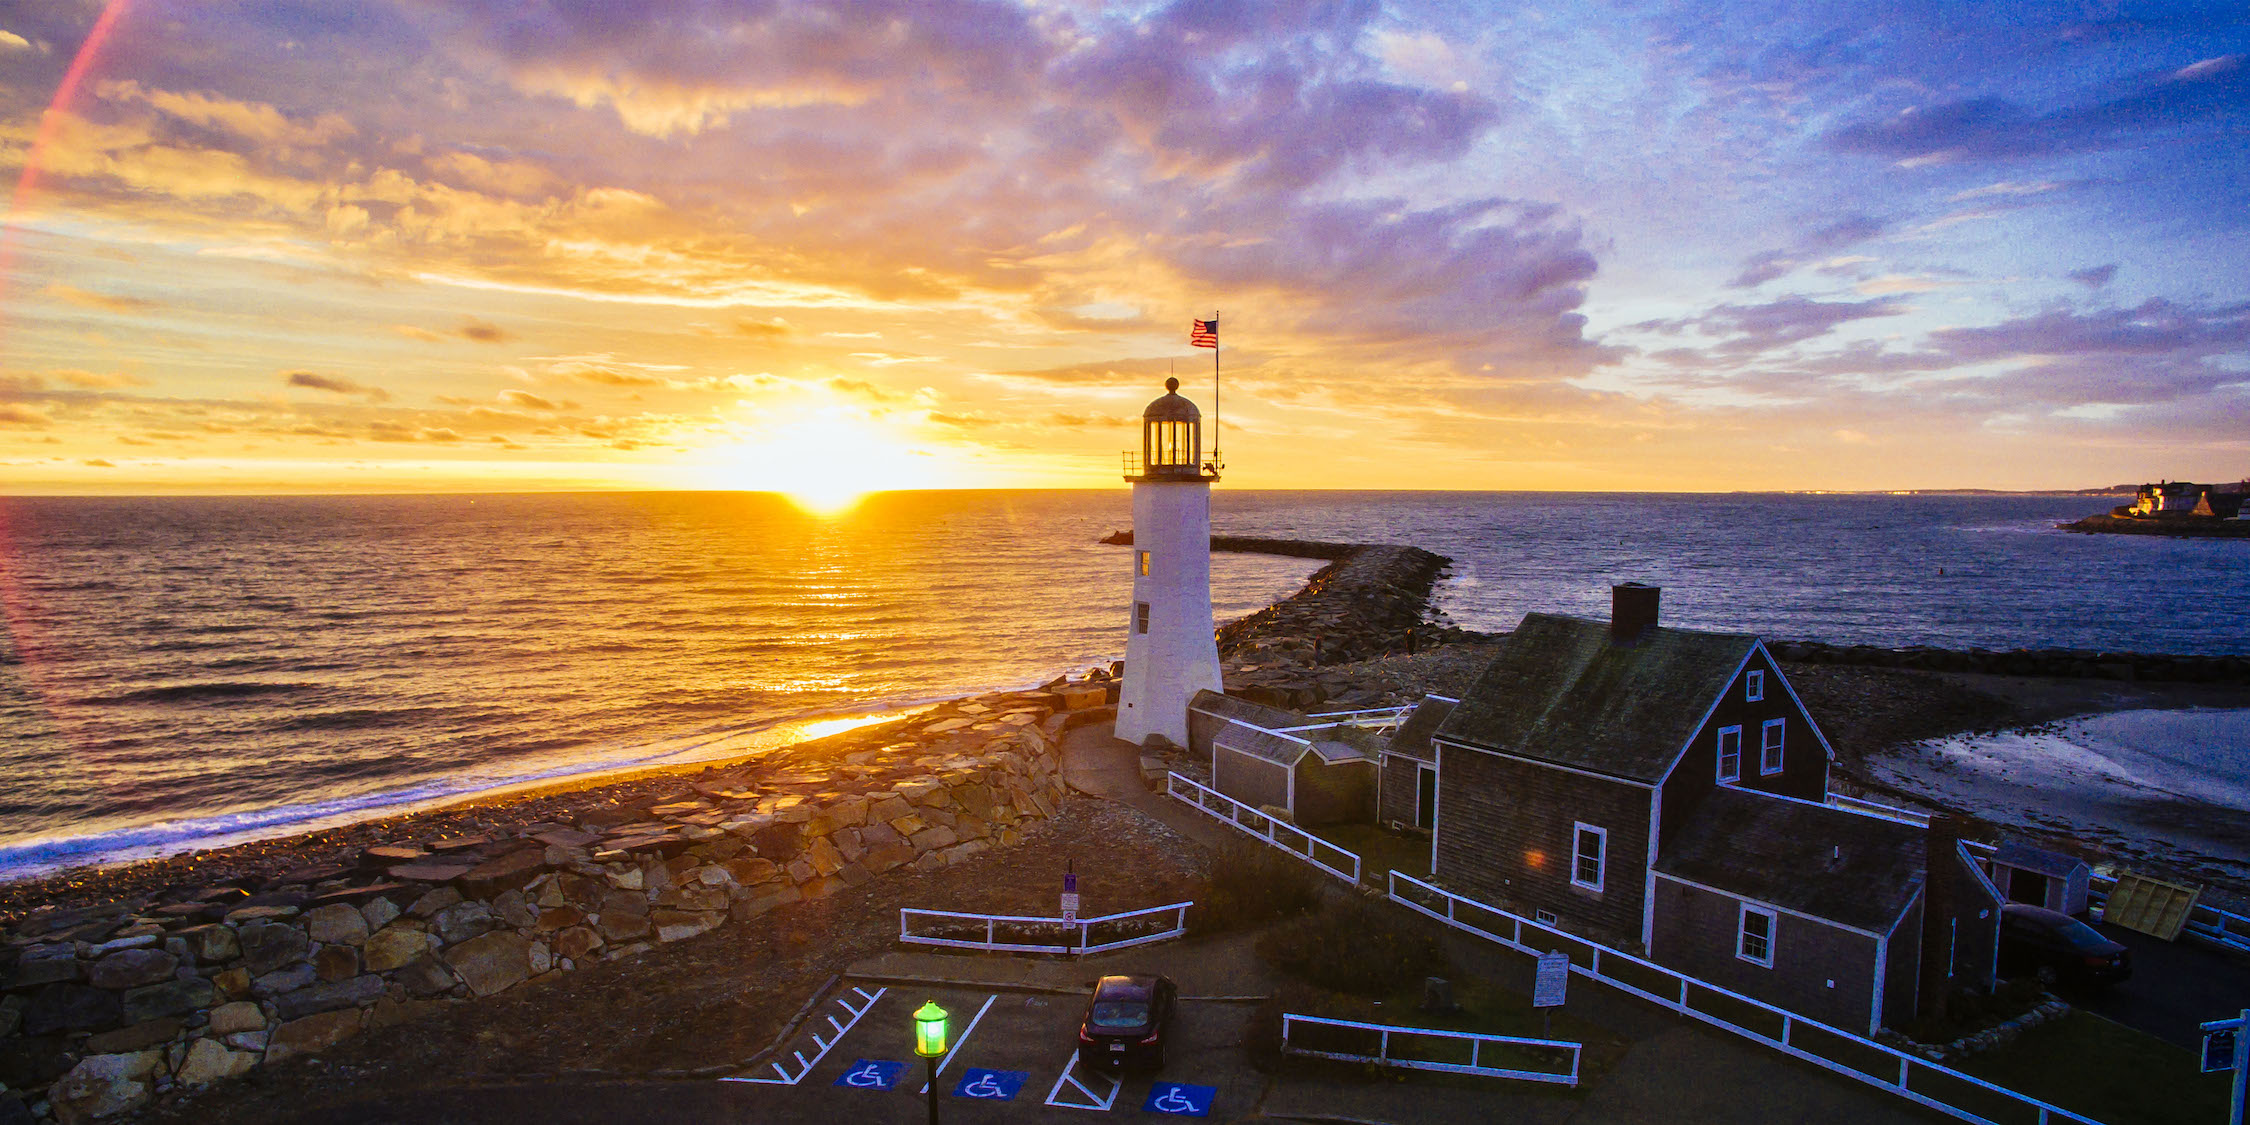 Title: The Lighthouse Keeper  Location: The Old Scituate Lighthouse in Boston, Massachusetts